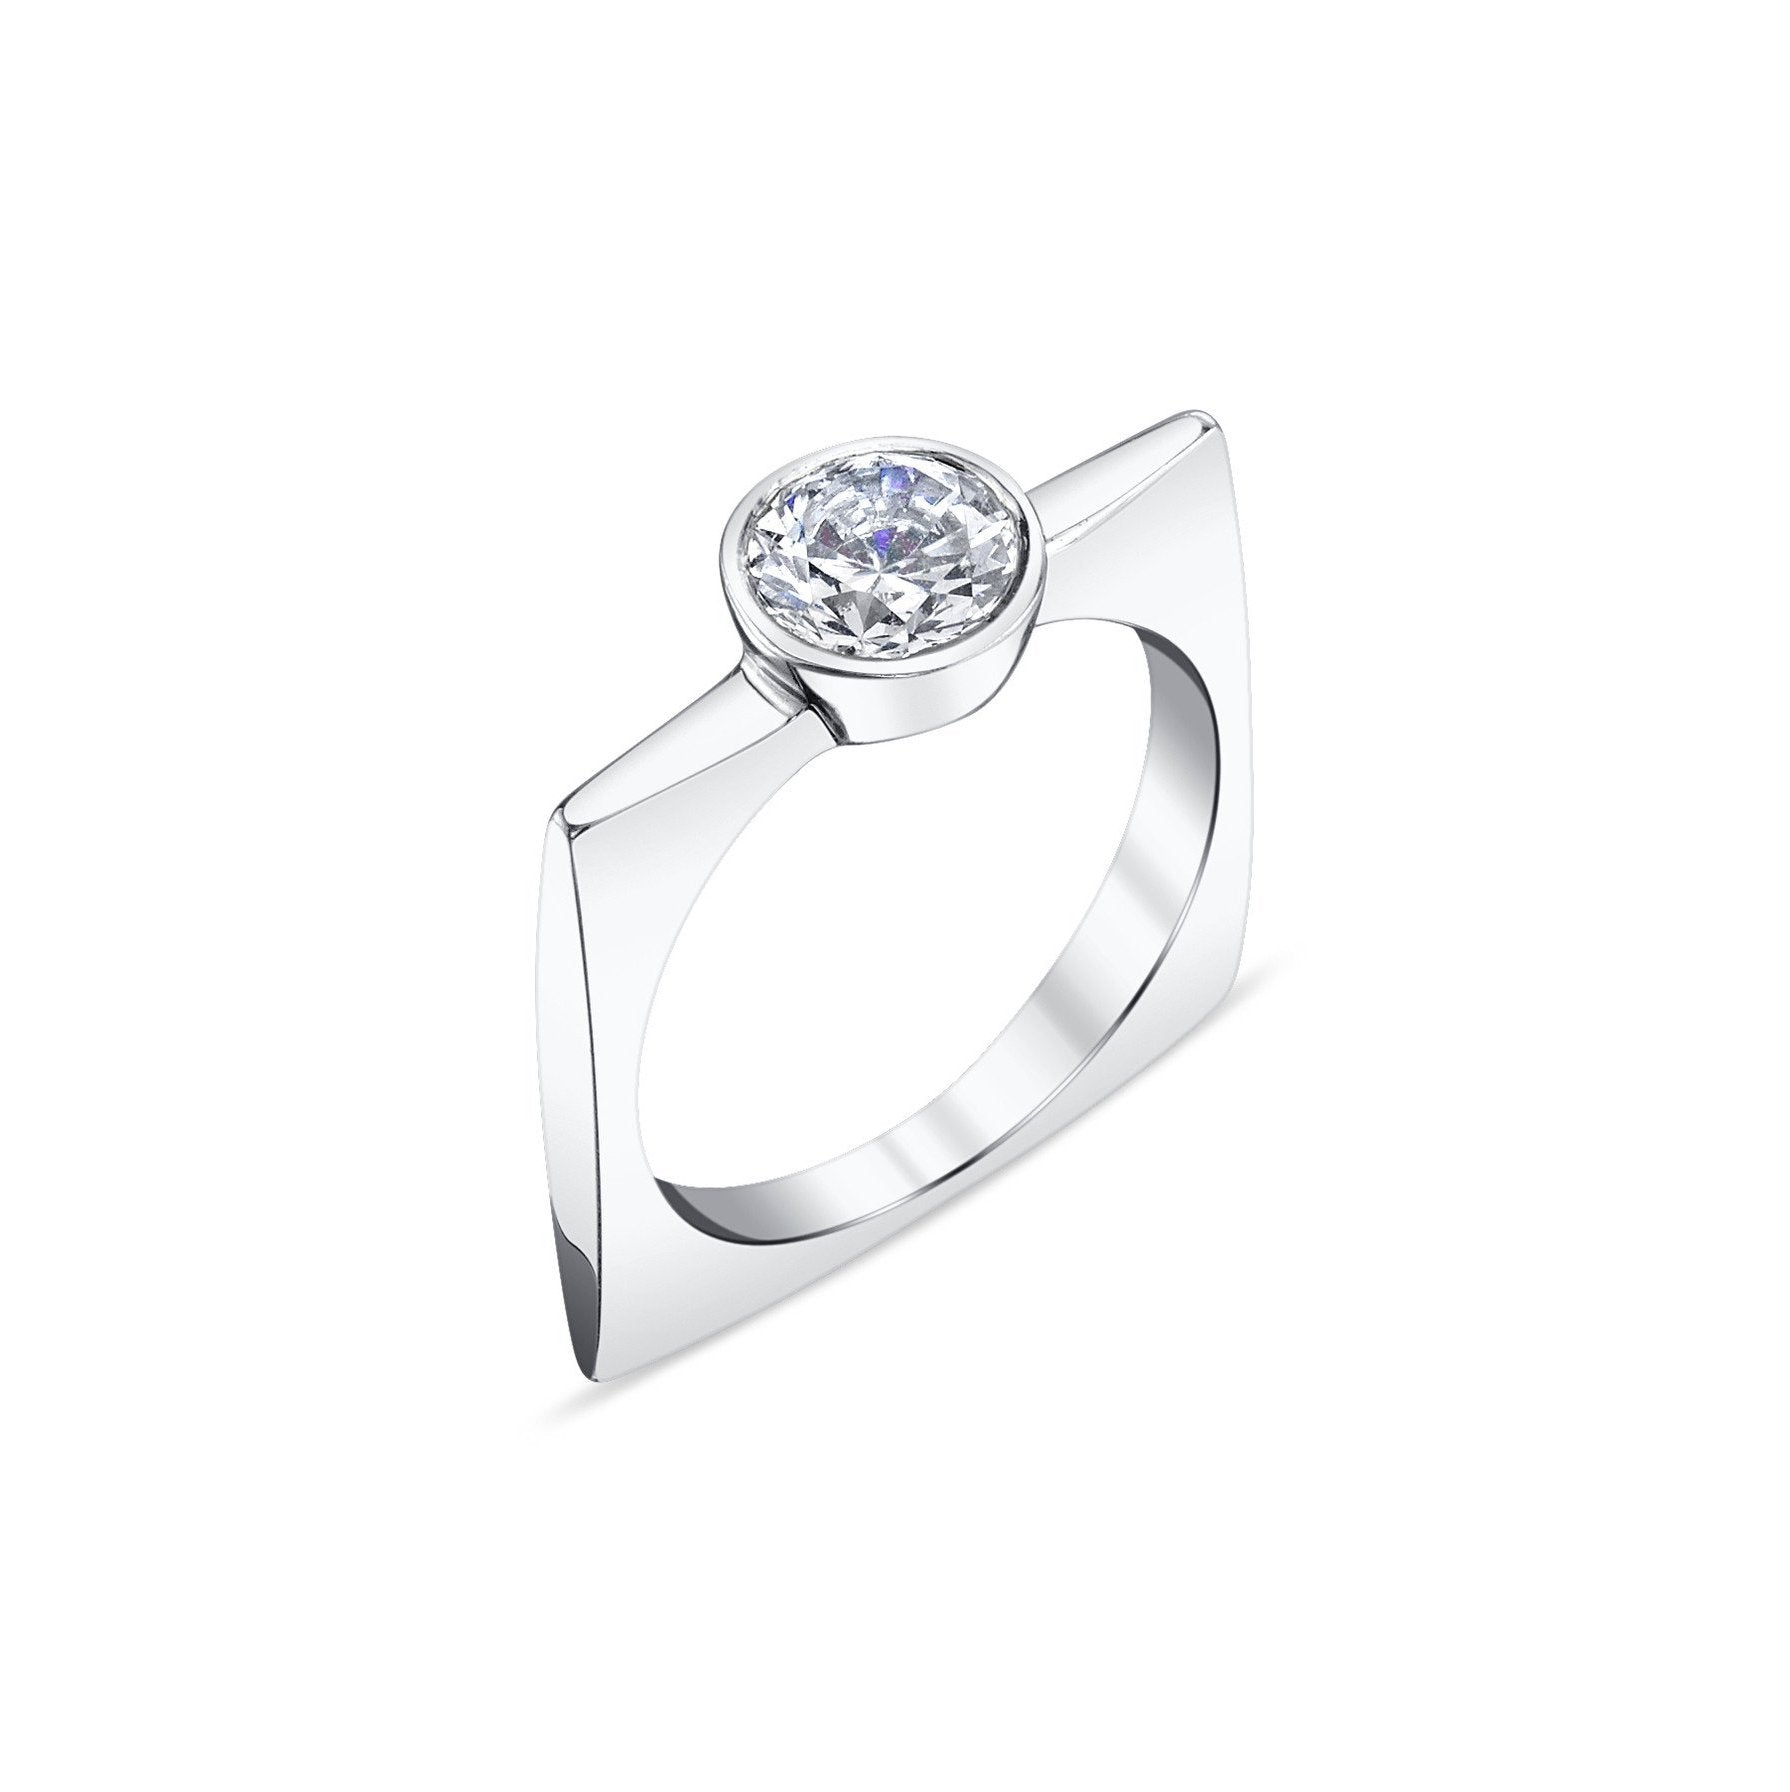 Thin Tapered Square Ring With A Diamond - Gabriela Artigas